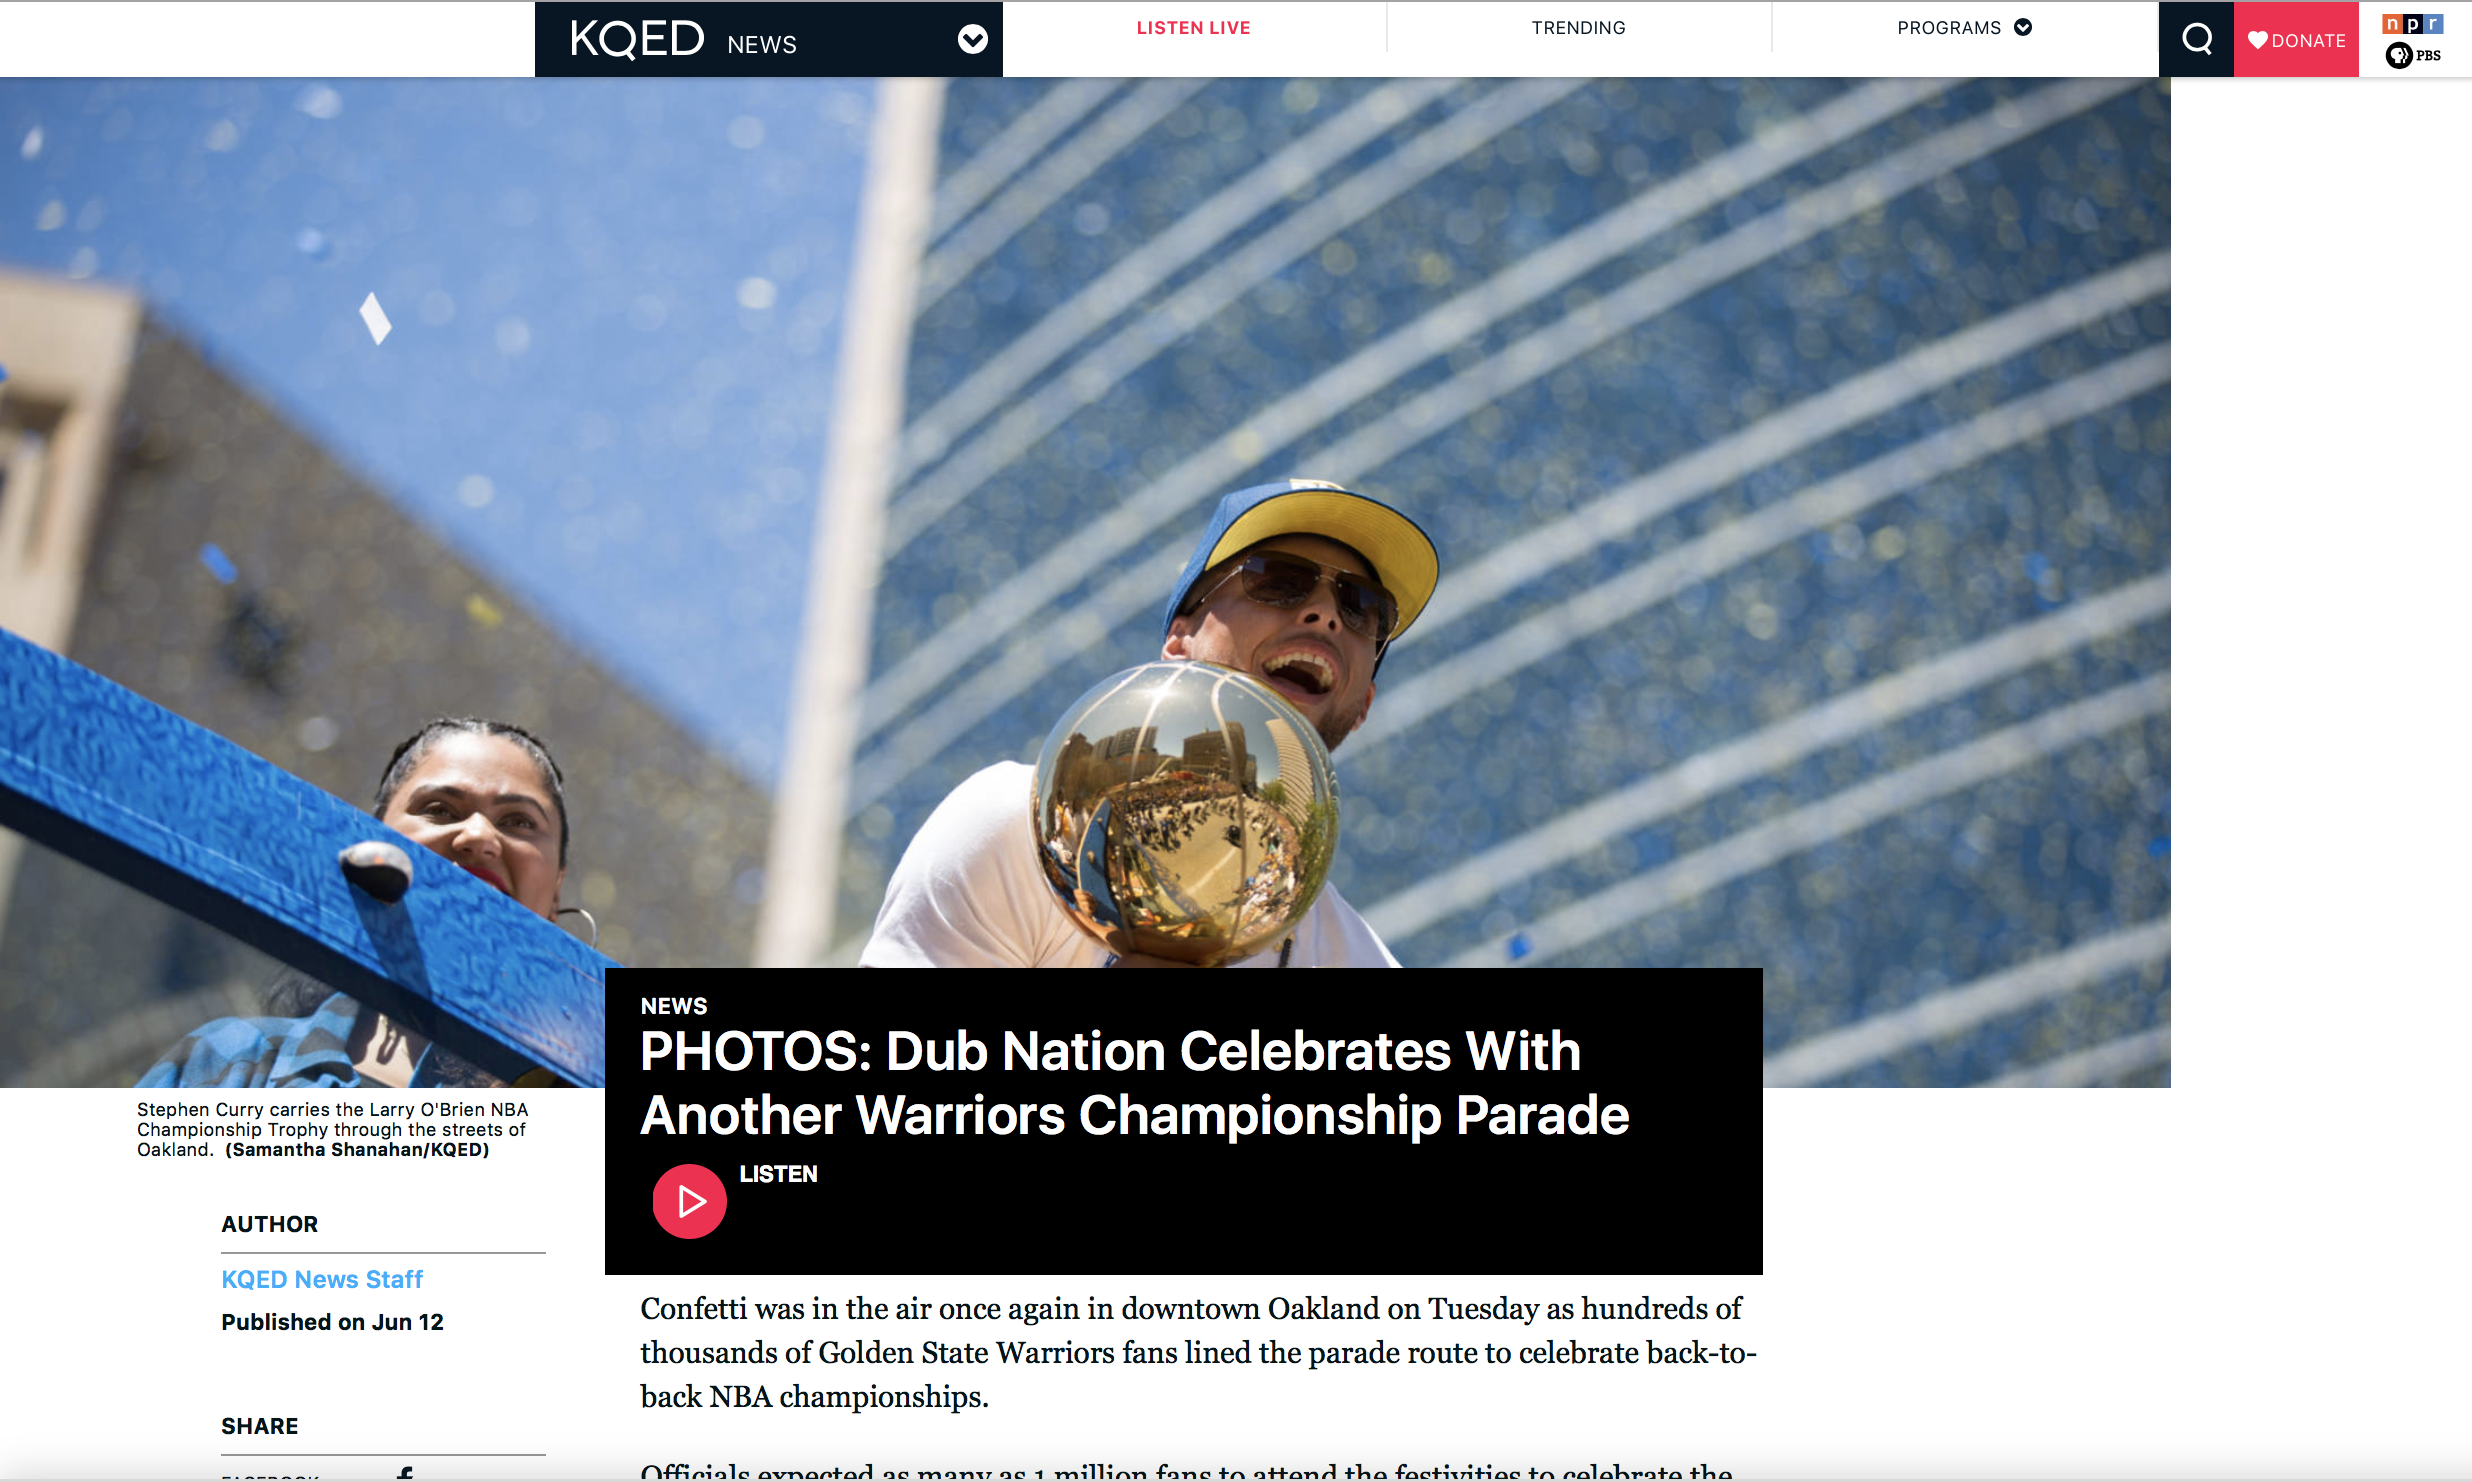 (KQED/News) PHOTOS: Dub Nation Celebrates With Another Warriors Championship Parade